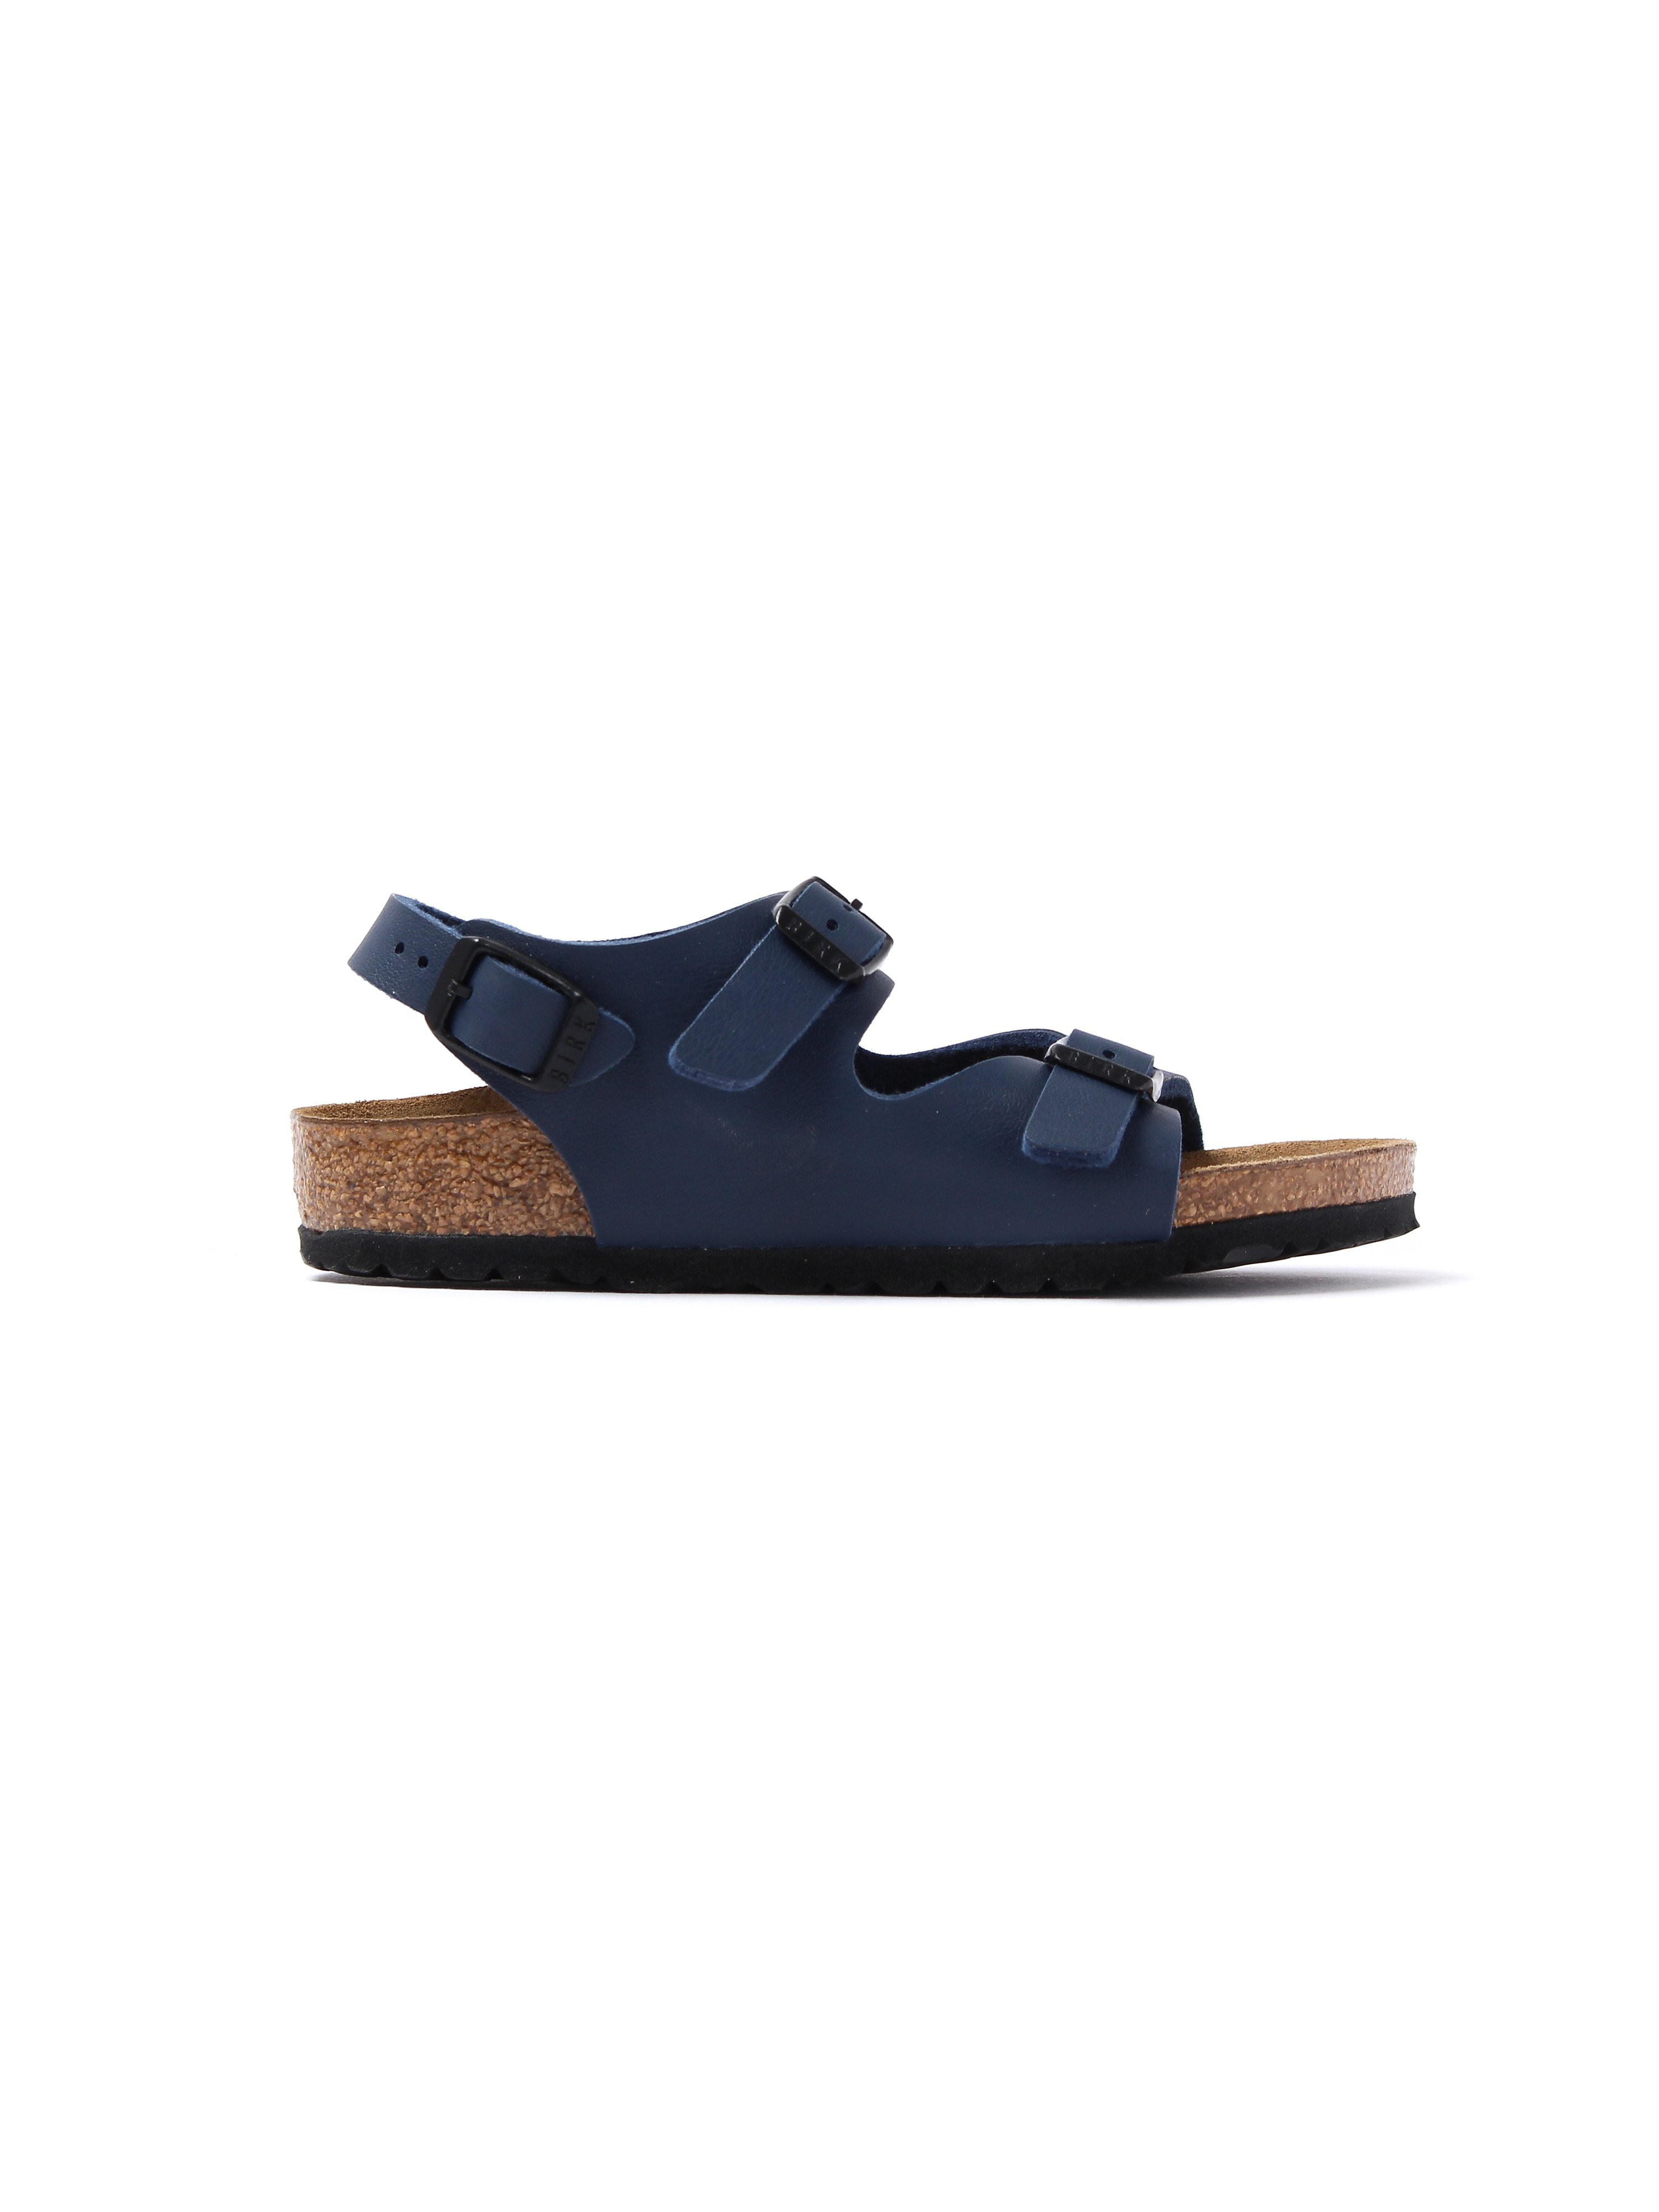 Birkenstock Infant Roma Kinder Narrow Fit  Sandals - Blau Navy